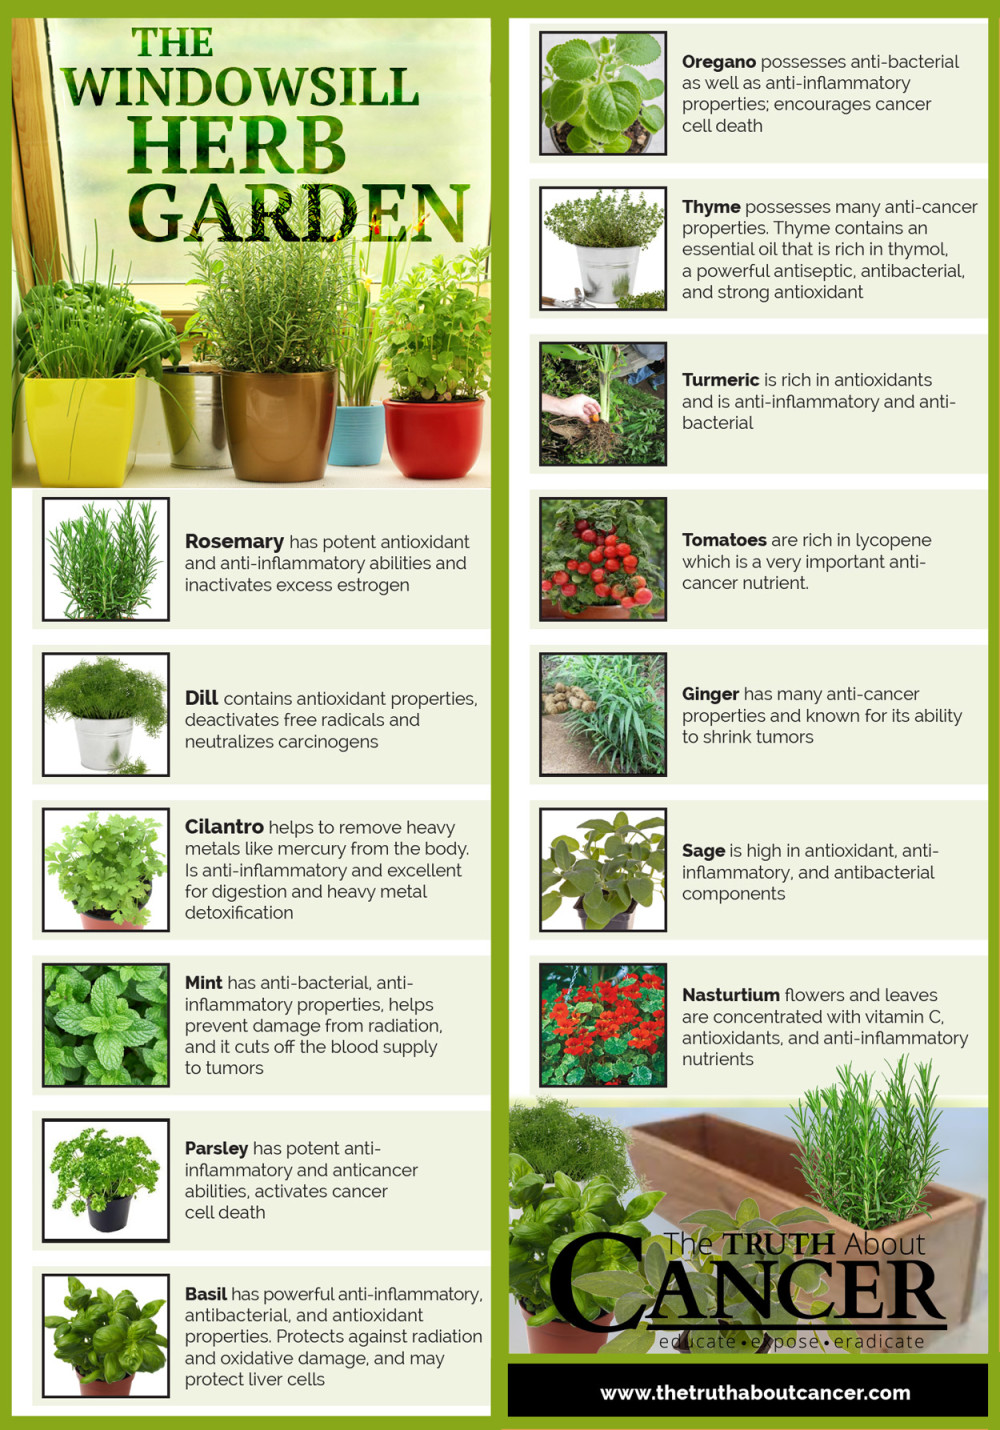 Windowshill-Herb-Garden-article